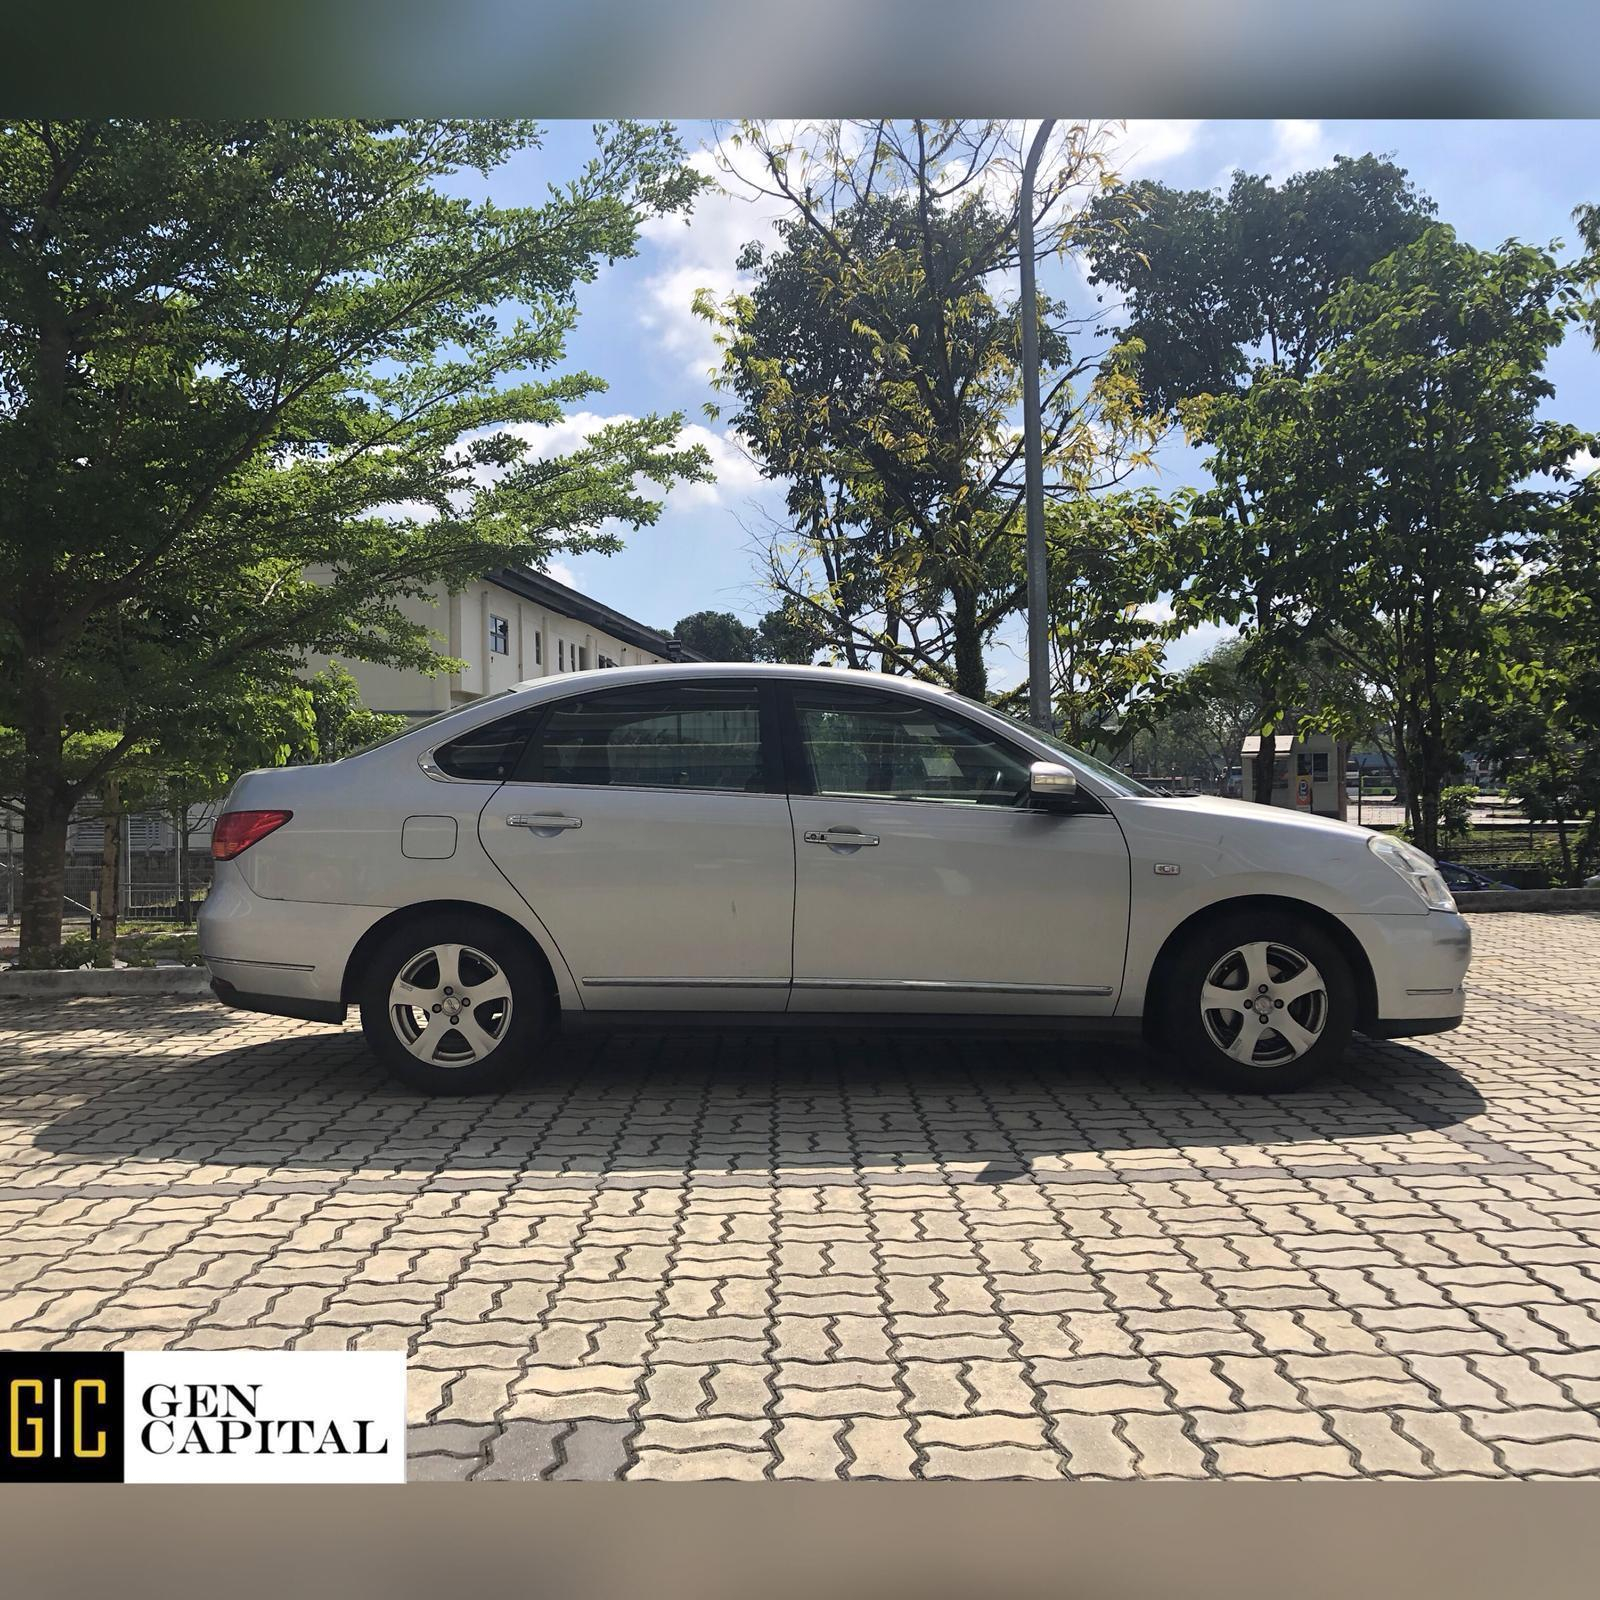 Nissan ylphy 1.5A ~ Comfortable Car for Personal/Private Hire Usage!!